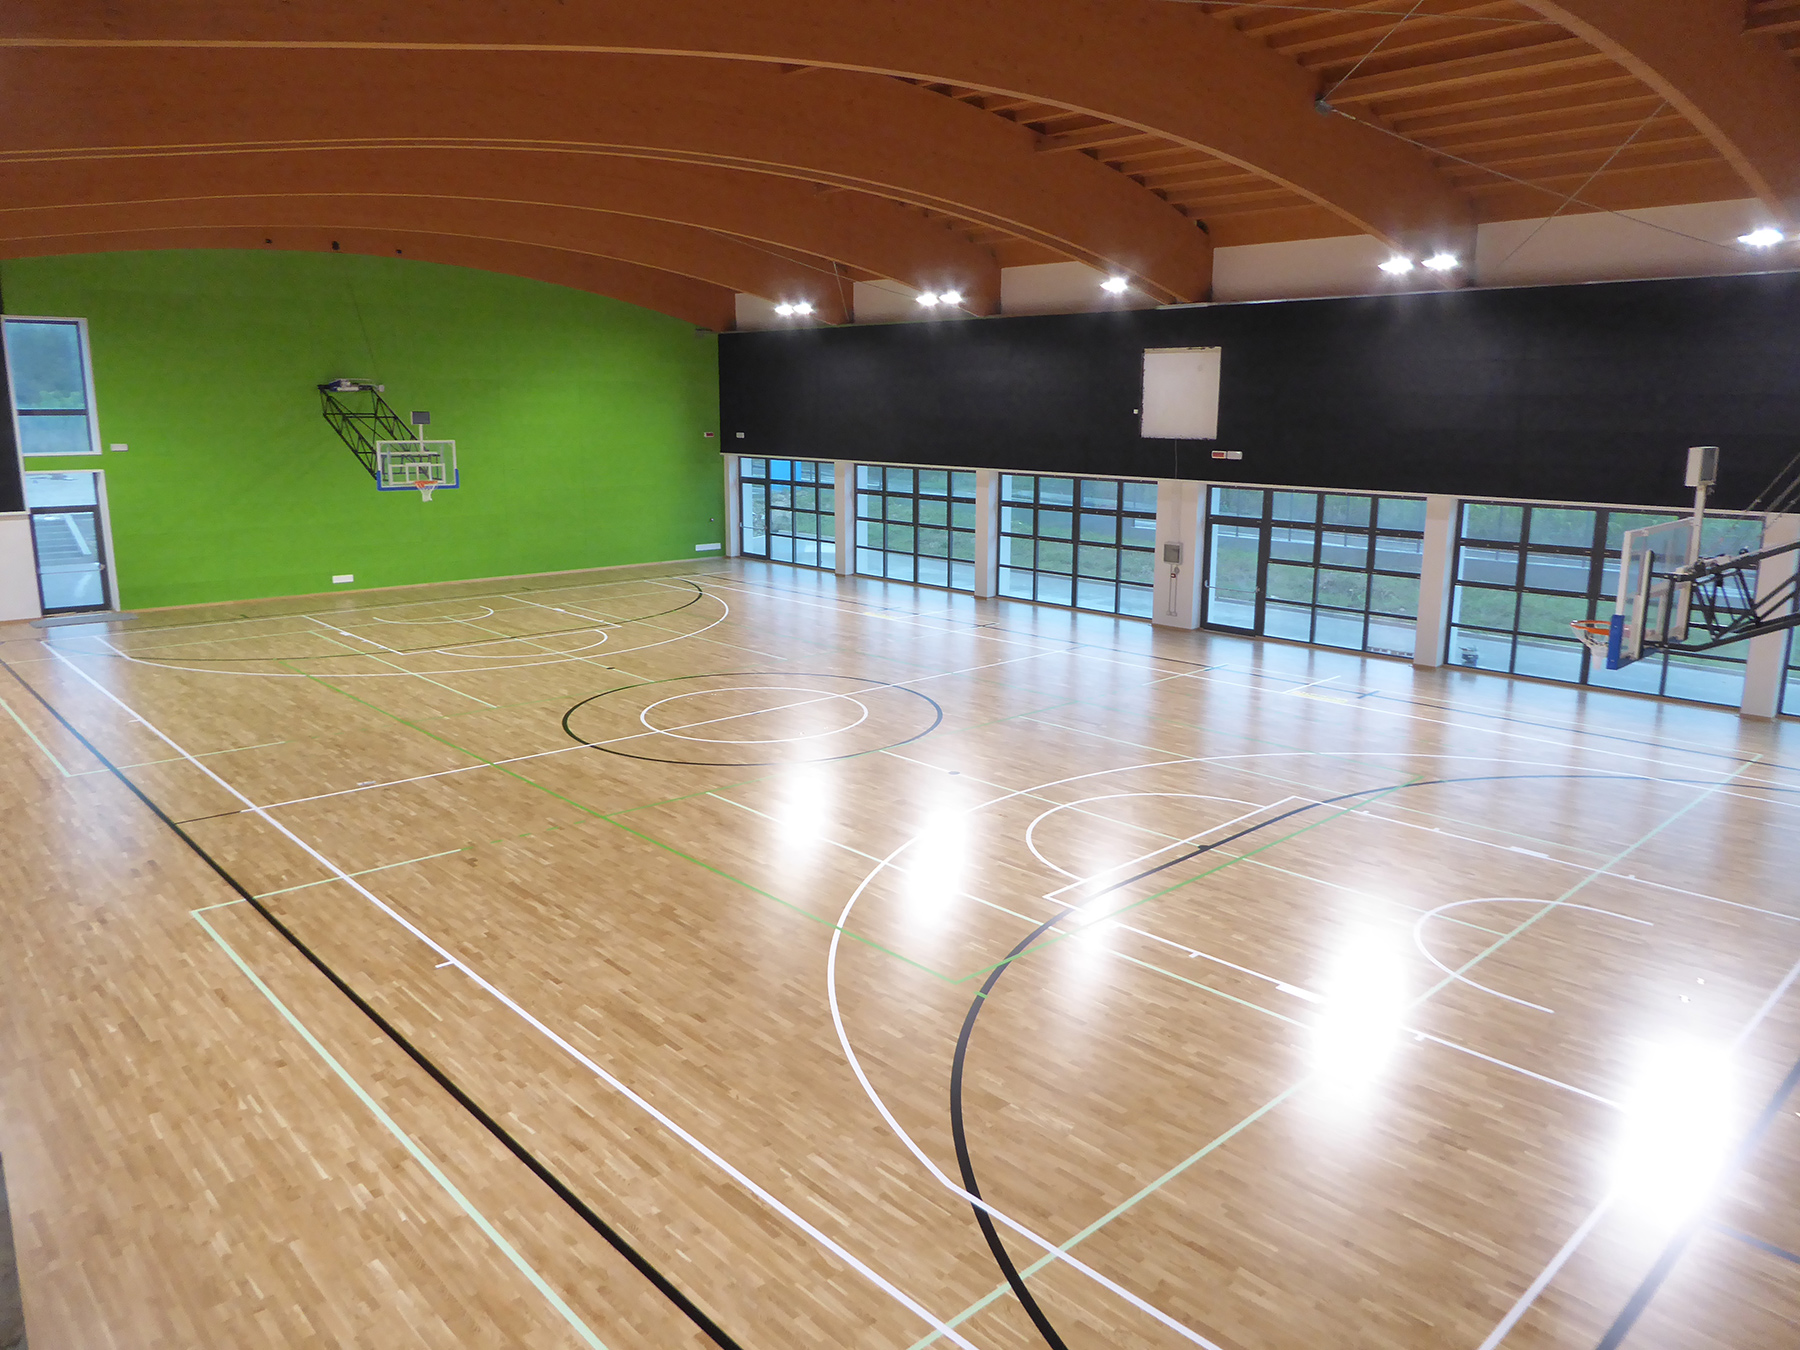 The new high performance parquet completed